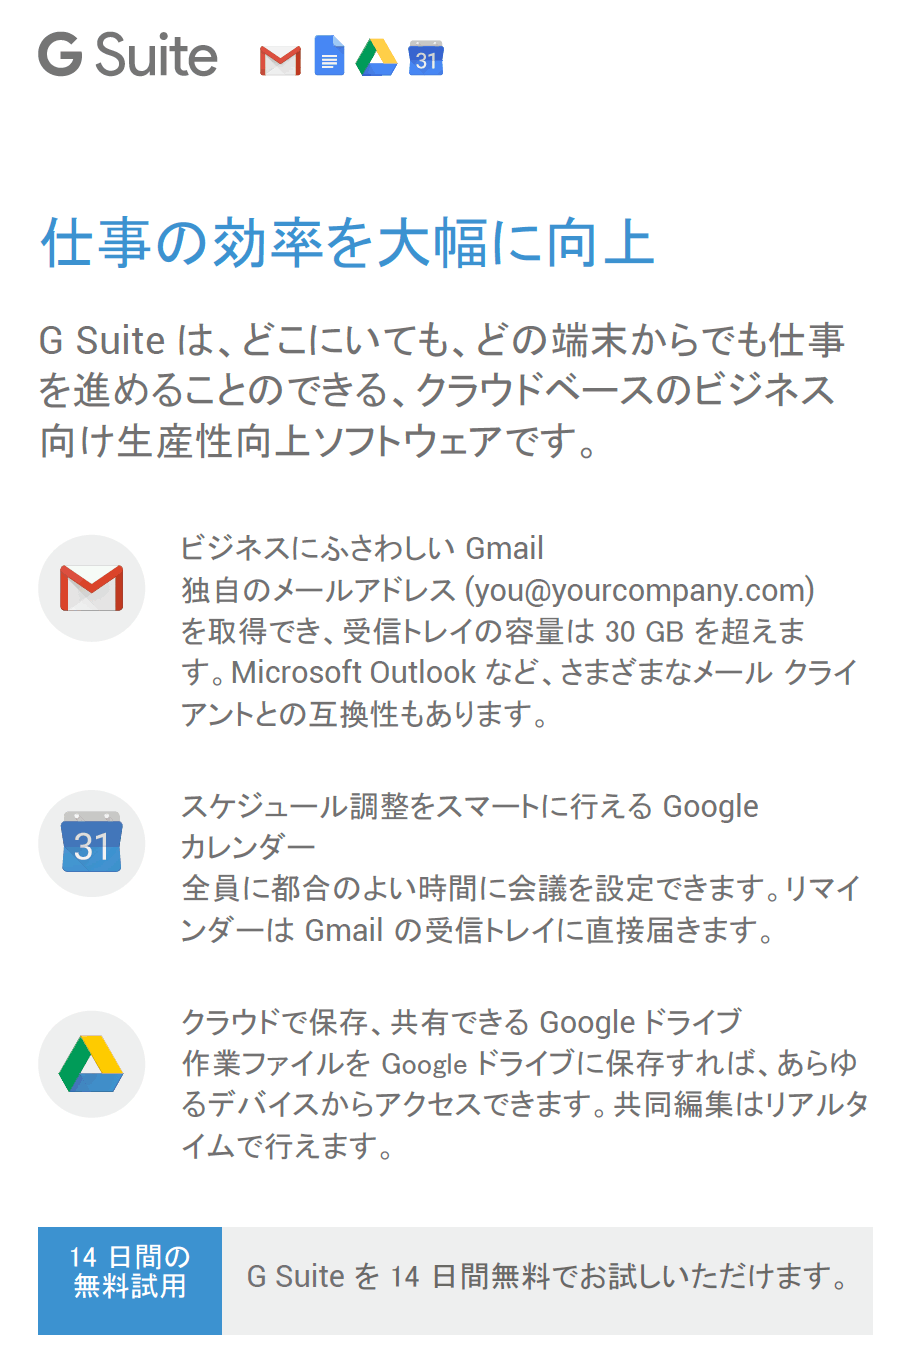 Gスイート 導入 注意 無料 メリット デメリット google_gsuite01